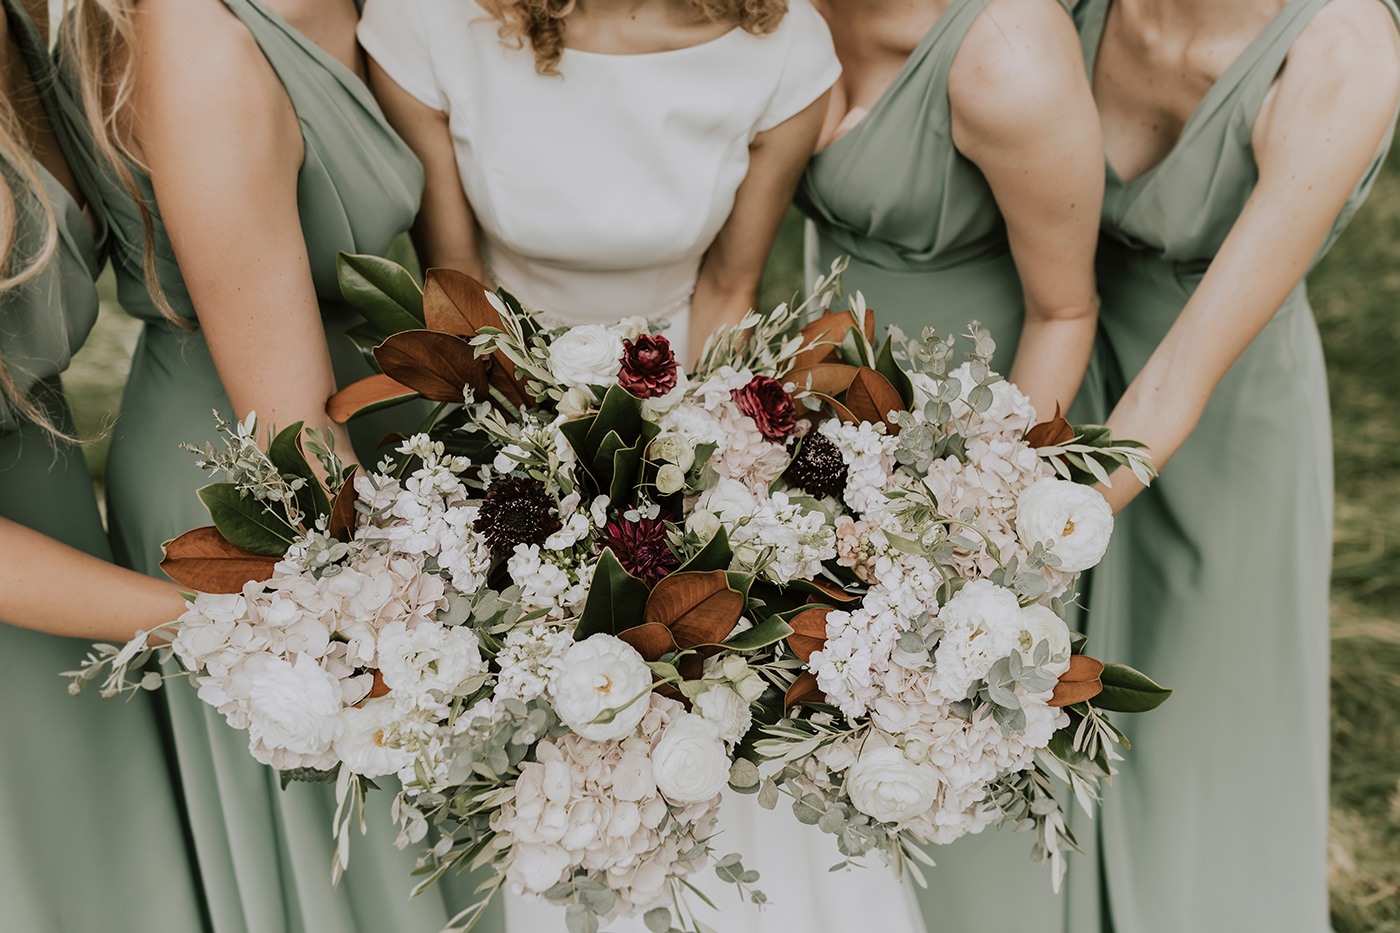 How to Find, Choose & Book Your Wedding Suppliers